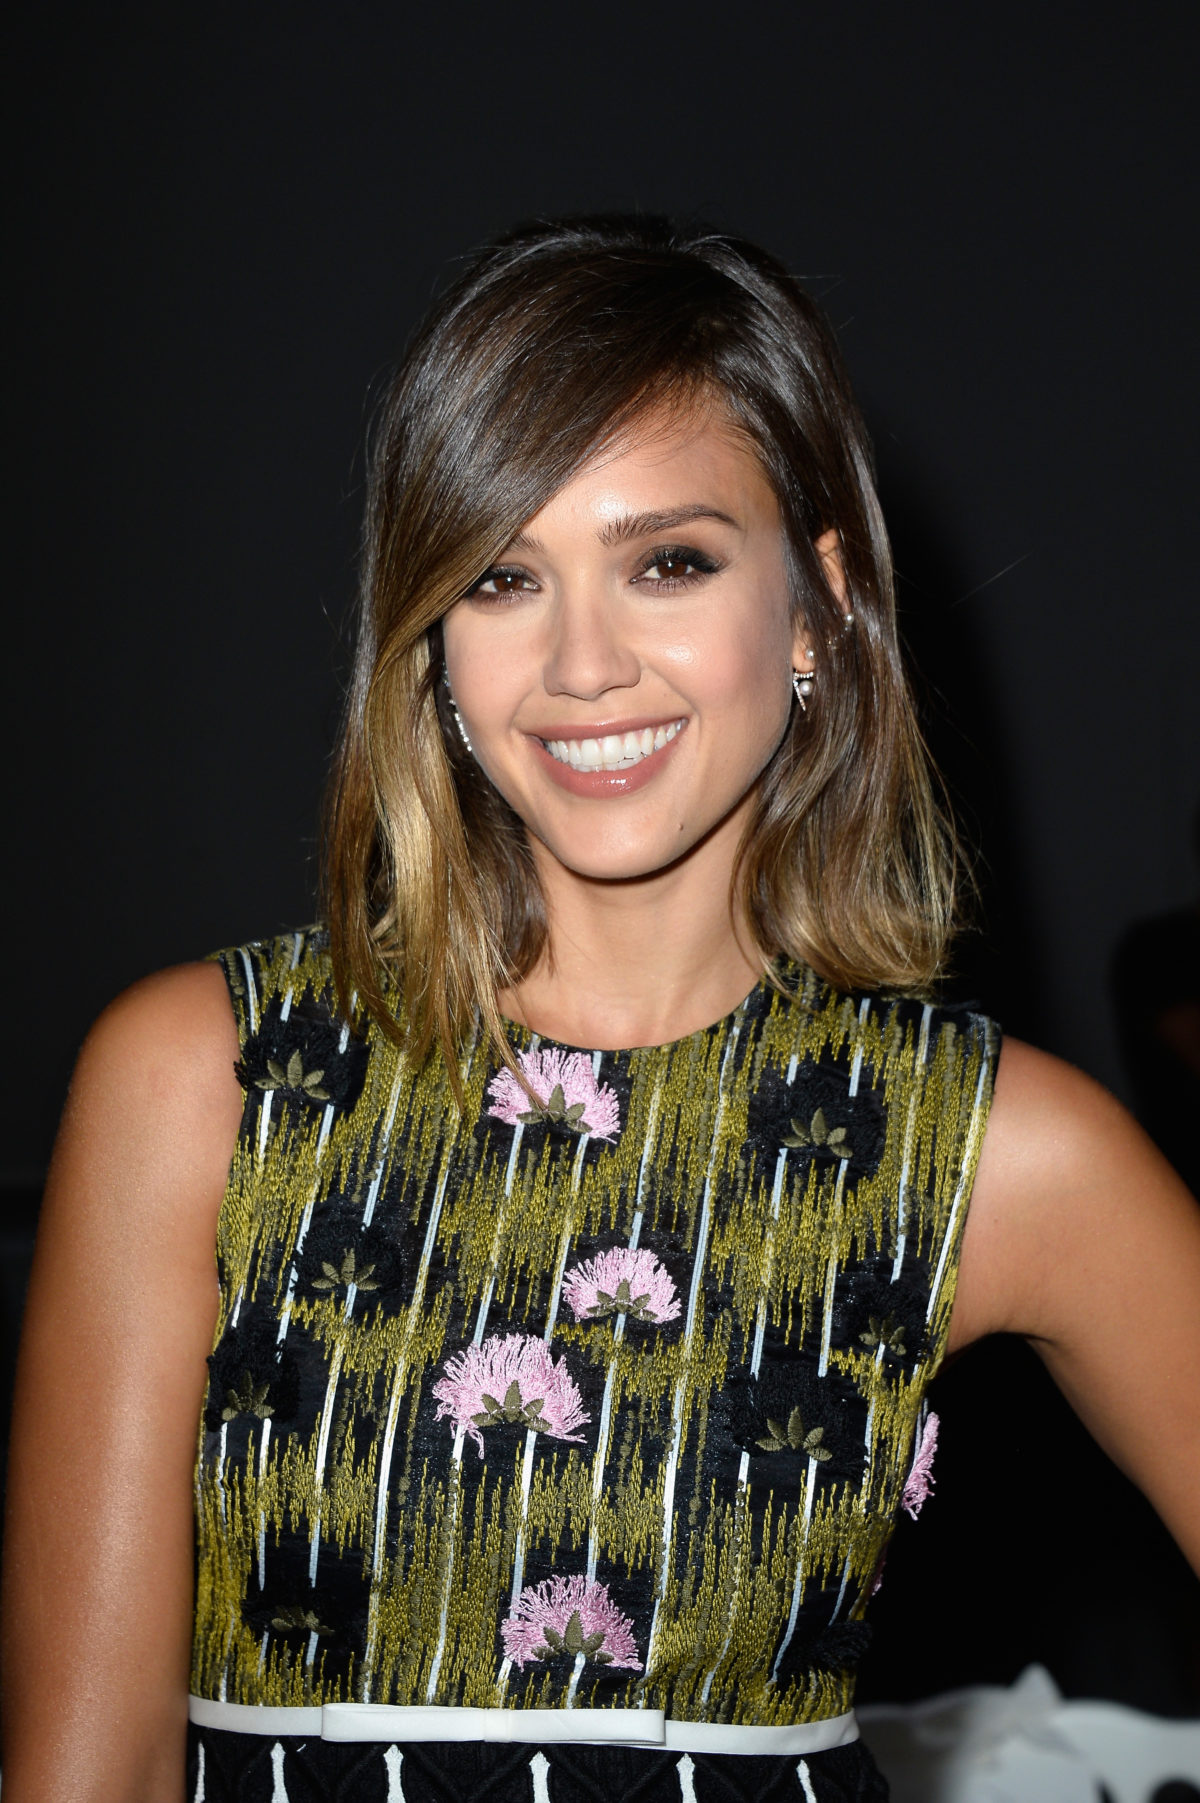 Jessica Alba attends the Giambattista Valli show as part of Paris Fashion Week Haute Couture Fall/Winter 2015/2016 on July 6, 2015 in Paris, France. (Photo by Pascal Le Segretain/Getty Images)